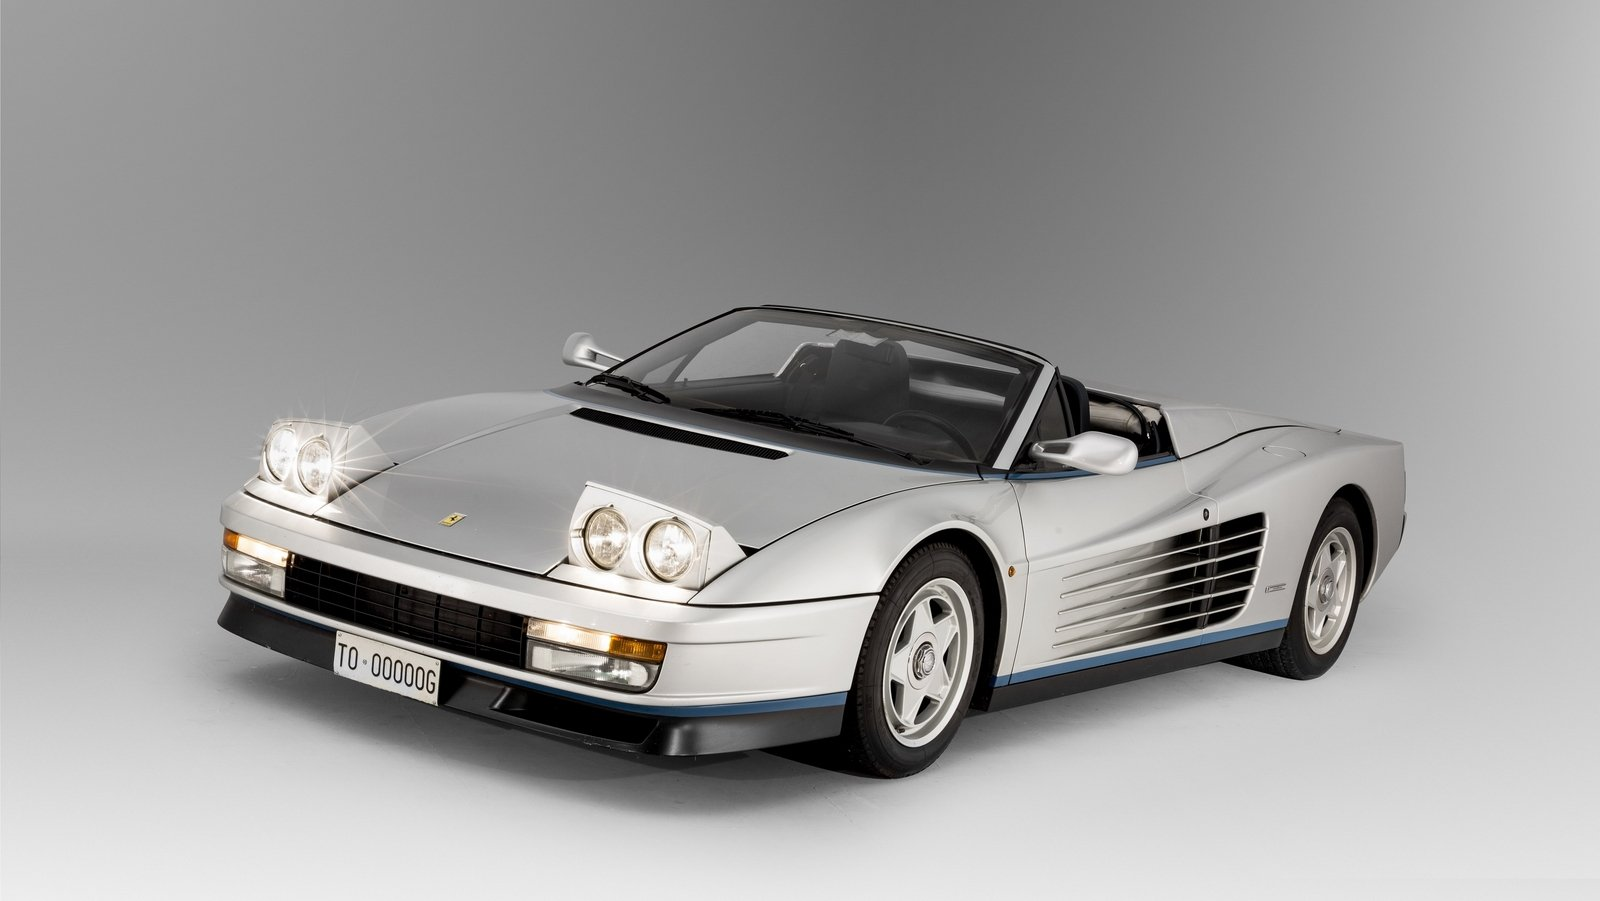 Ferrari Testarossa Latest News Reviews Specifications Prices Photos And Videos Top Speed